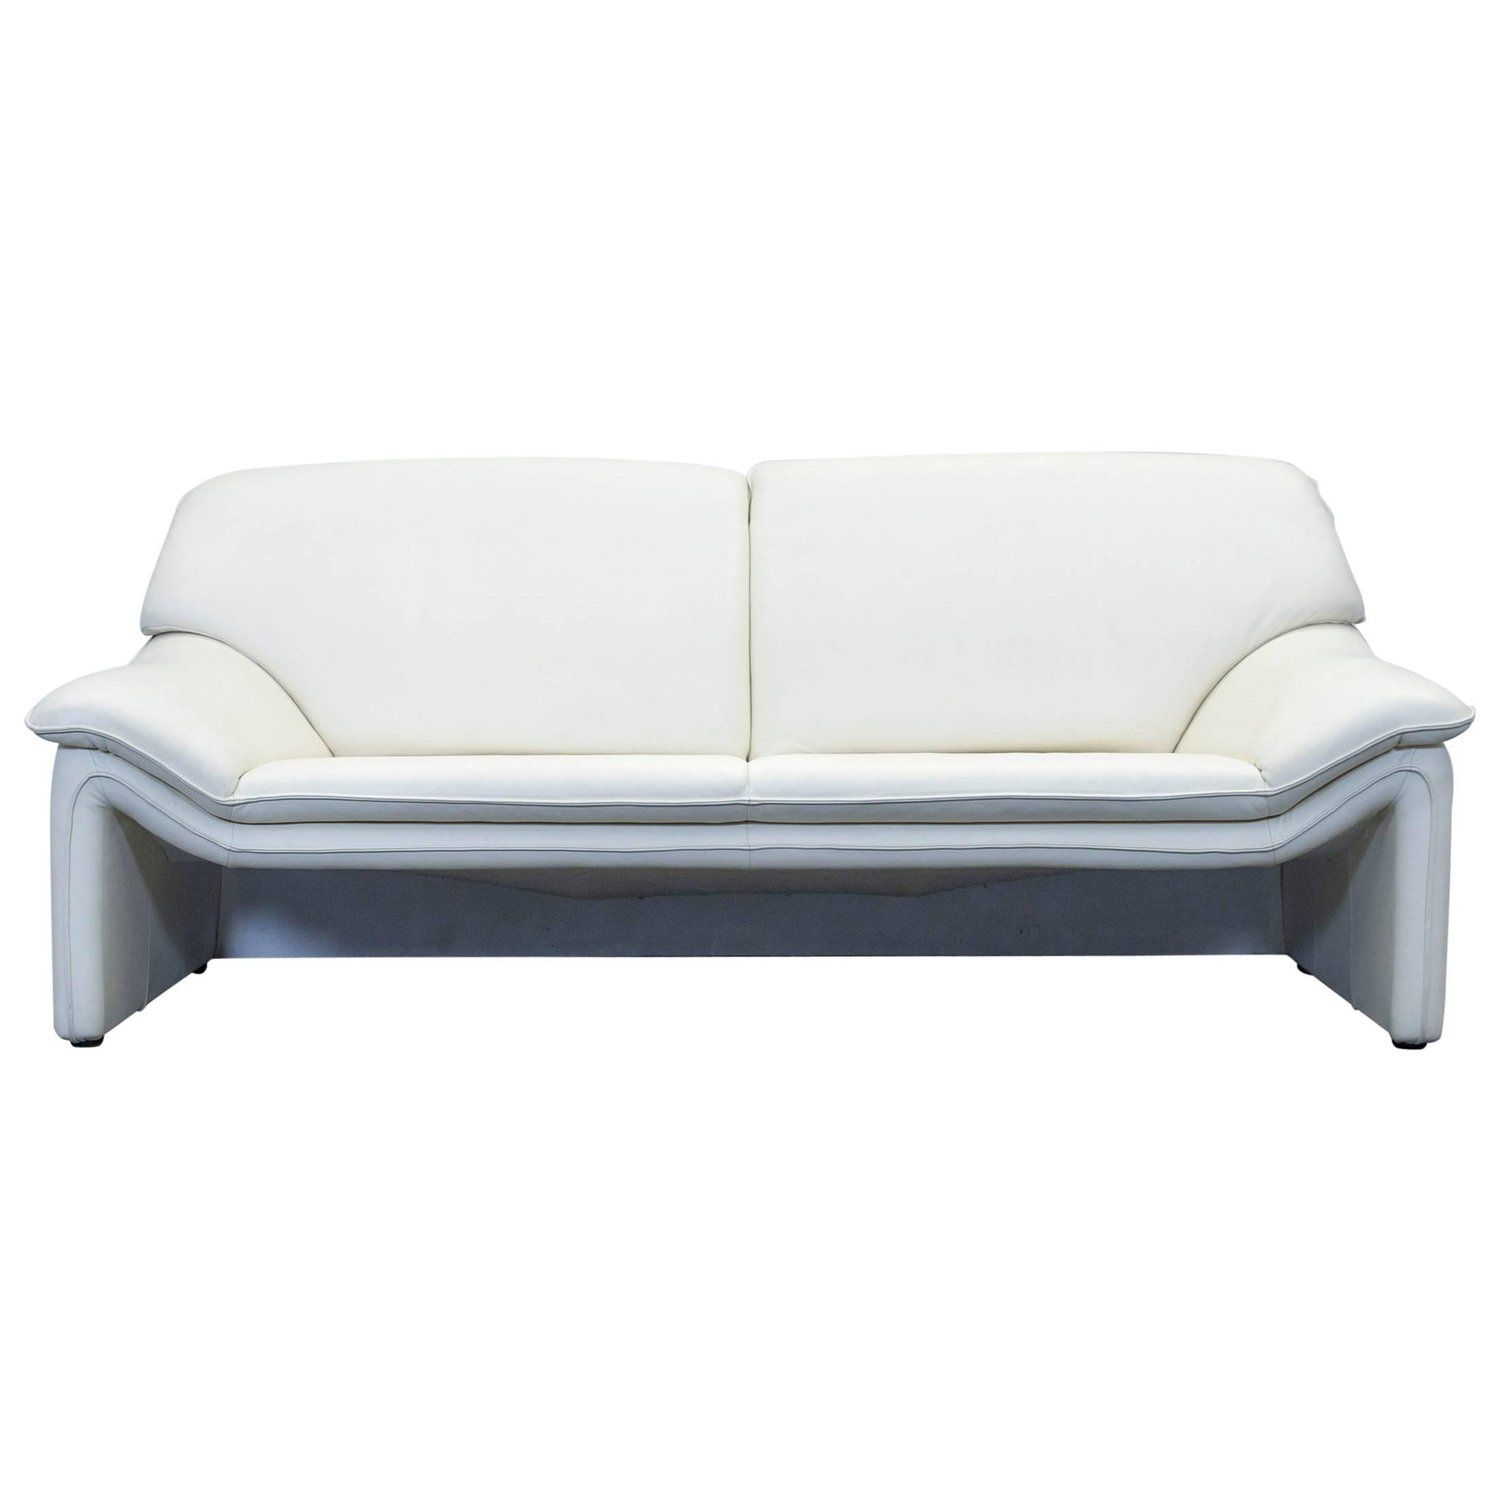 Laauser Atlanta Designer Sofa Leather Crème Two-Seat Couch Modern ...